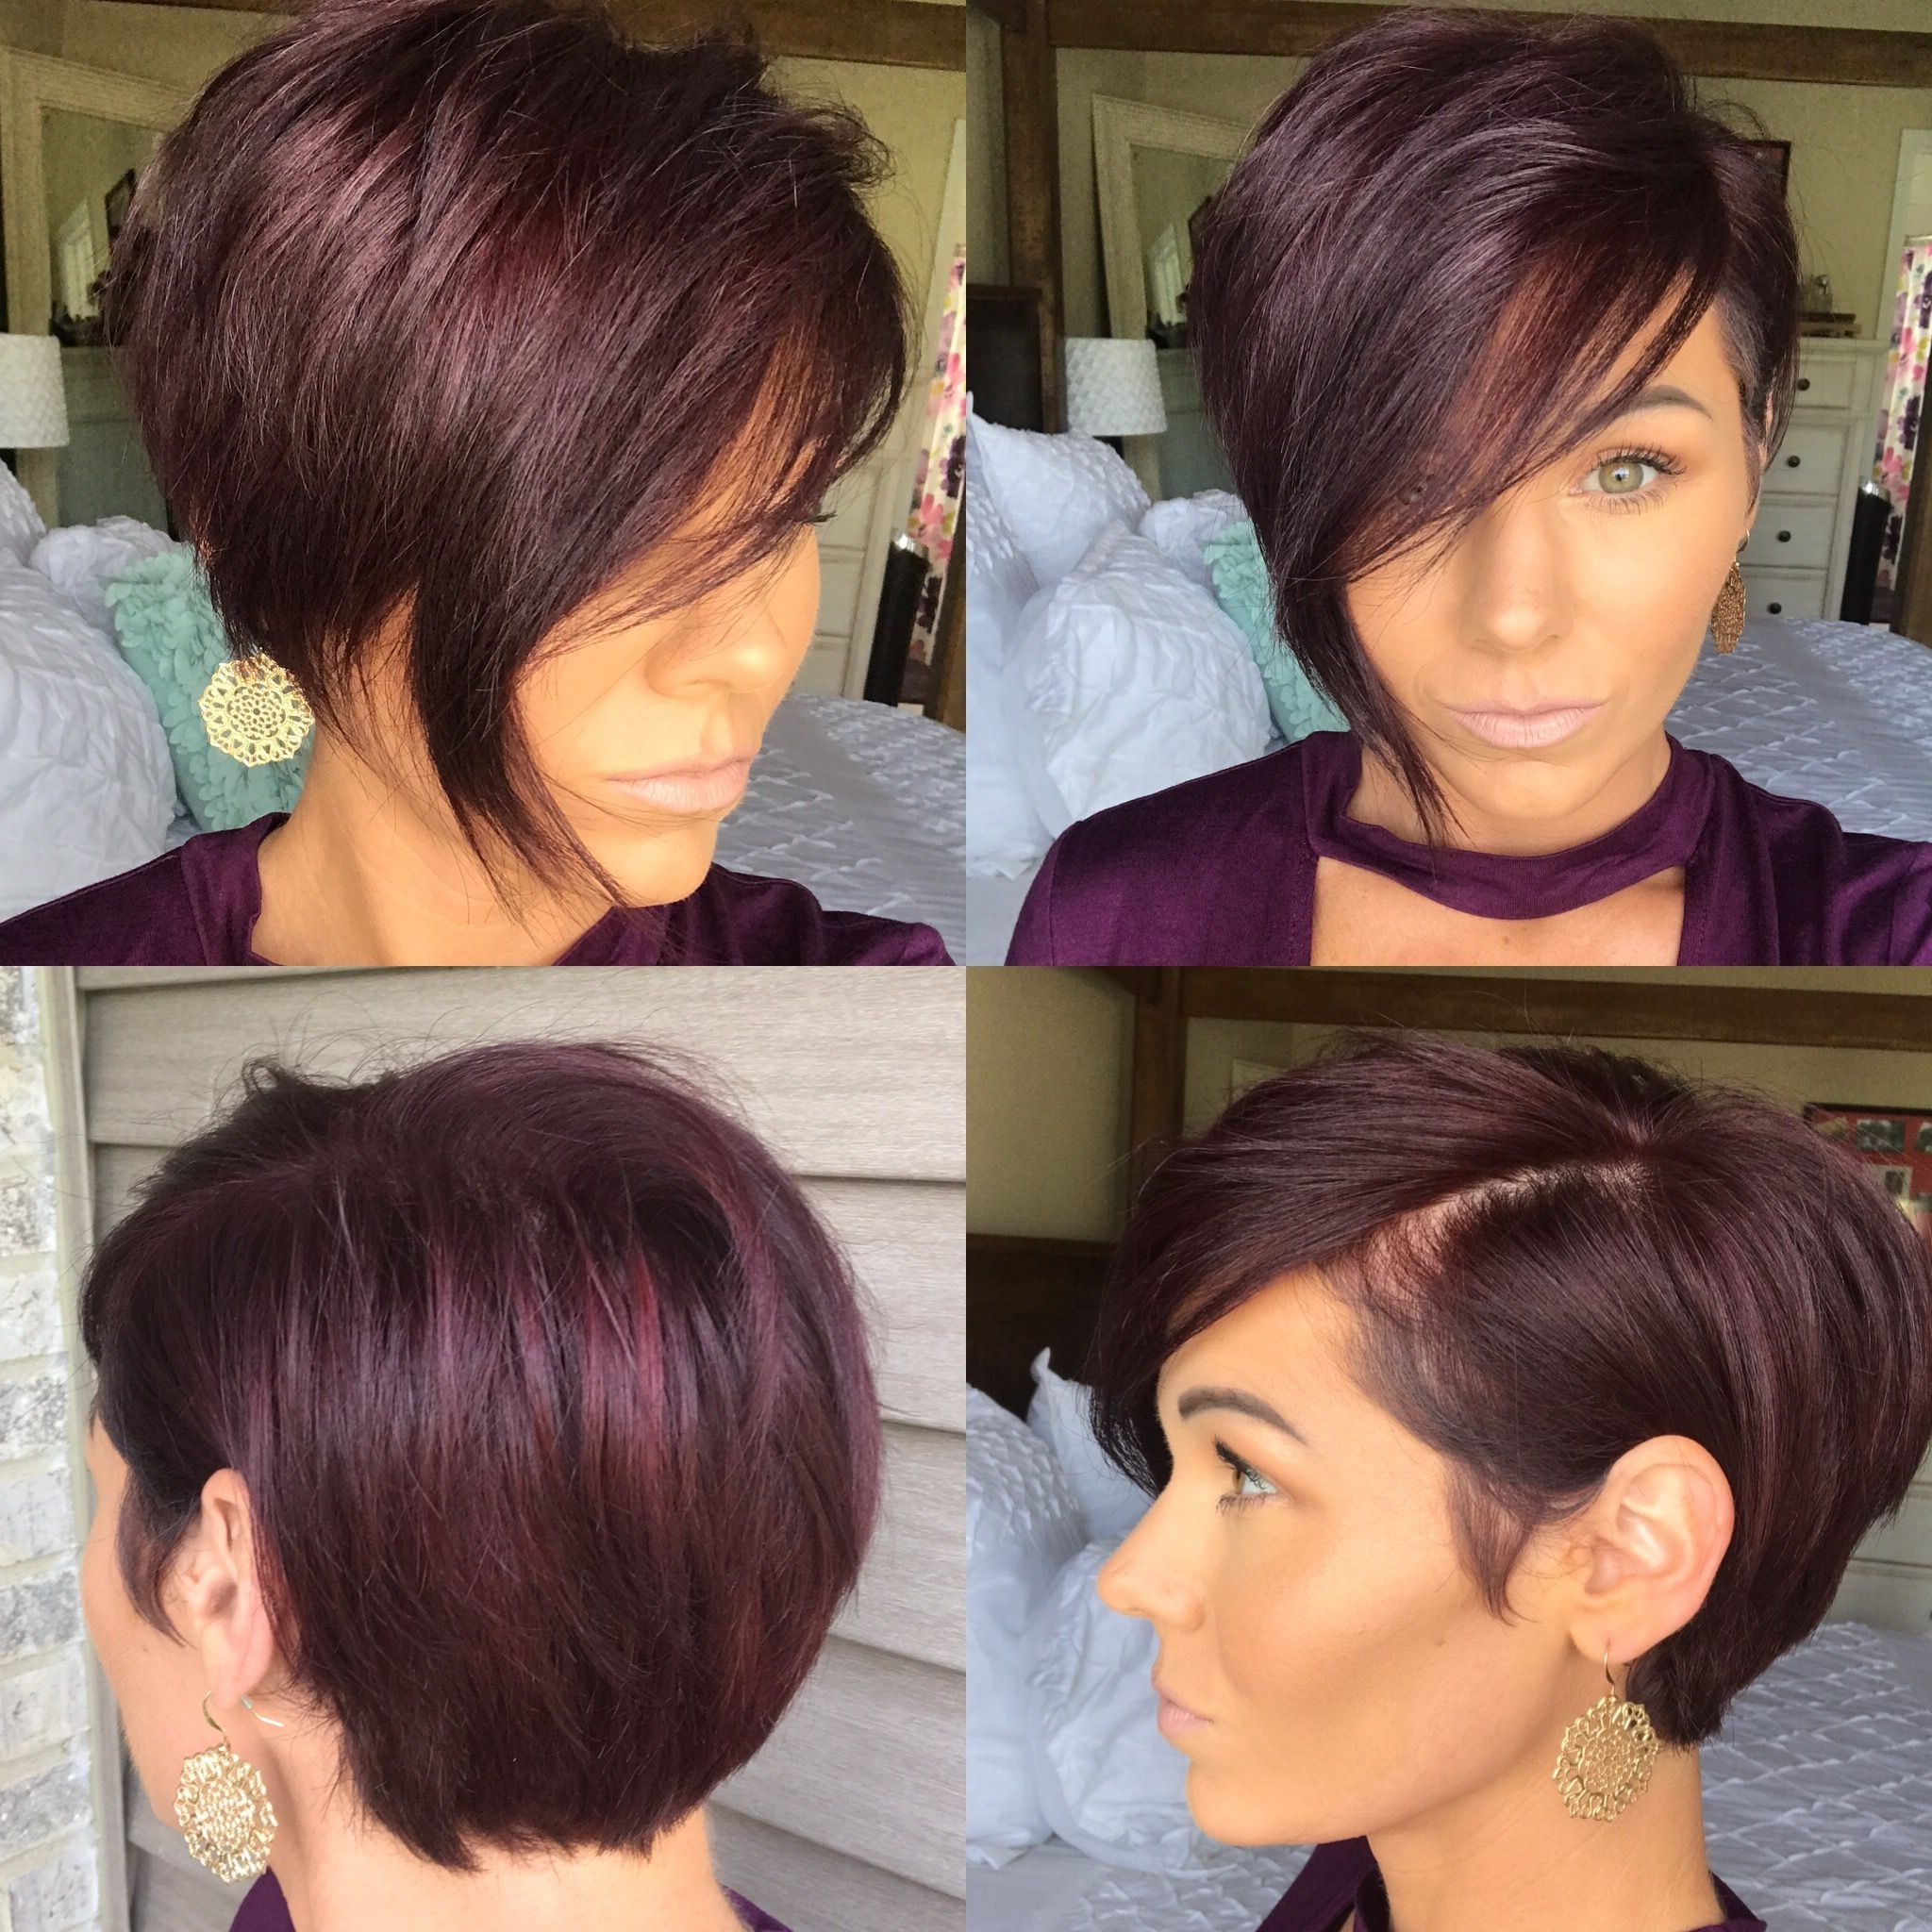 Adorable Asymmetrical Hairstyle | Do The 'do | Pinterest Pertaining To Current Choppy Asymmetrical Black Pixie Haircuts (Gallery 1 of 15)